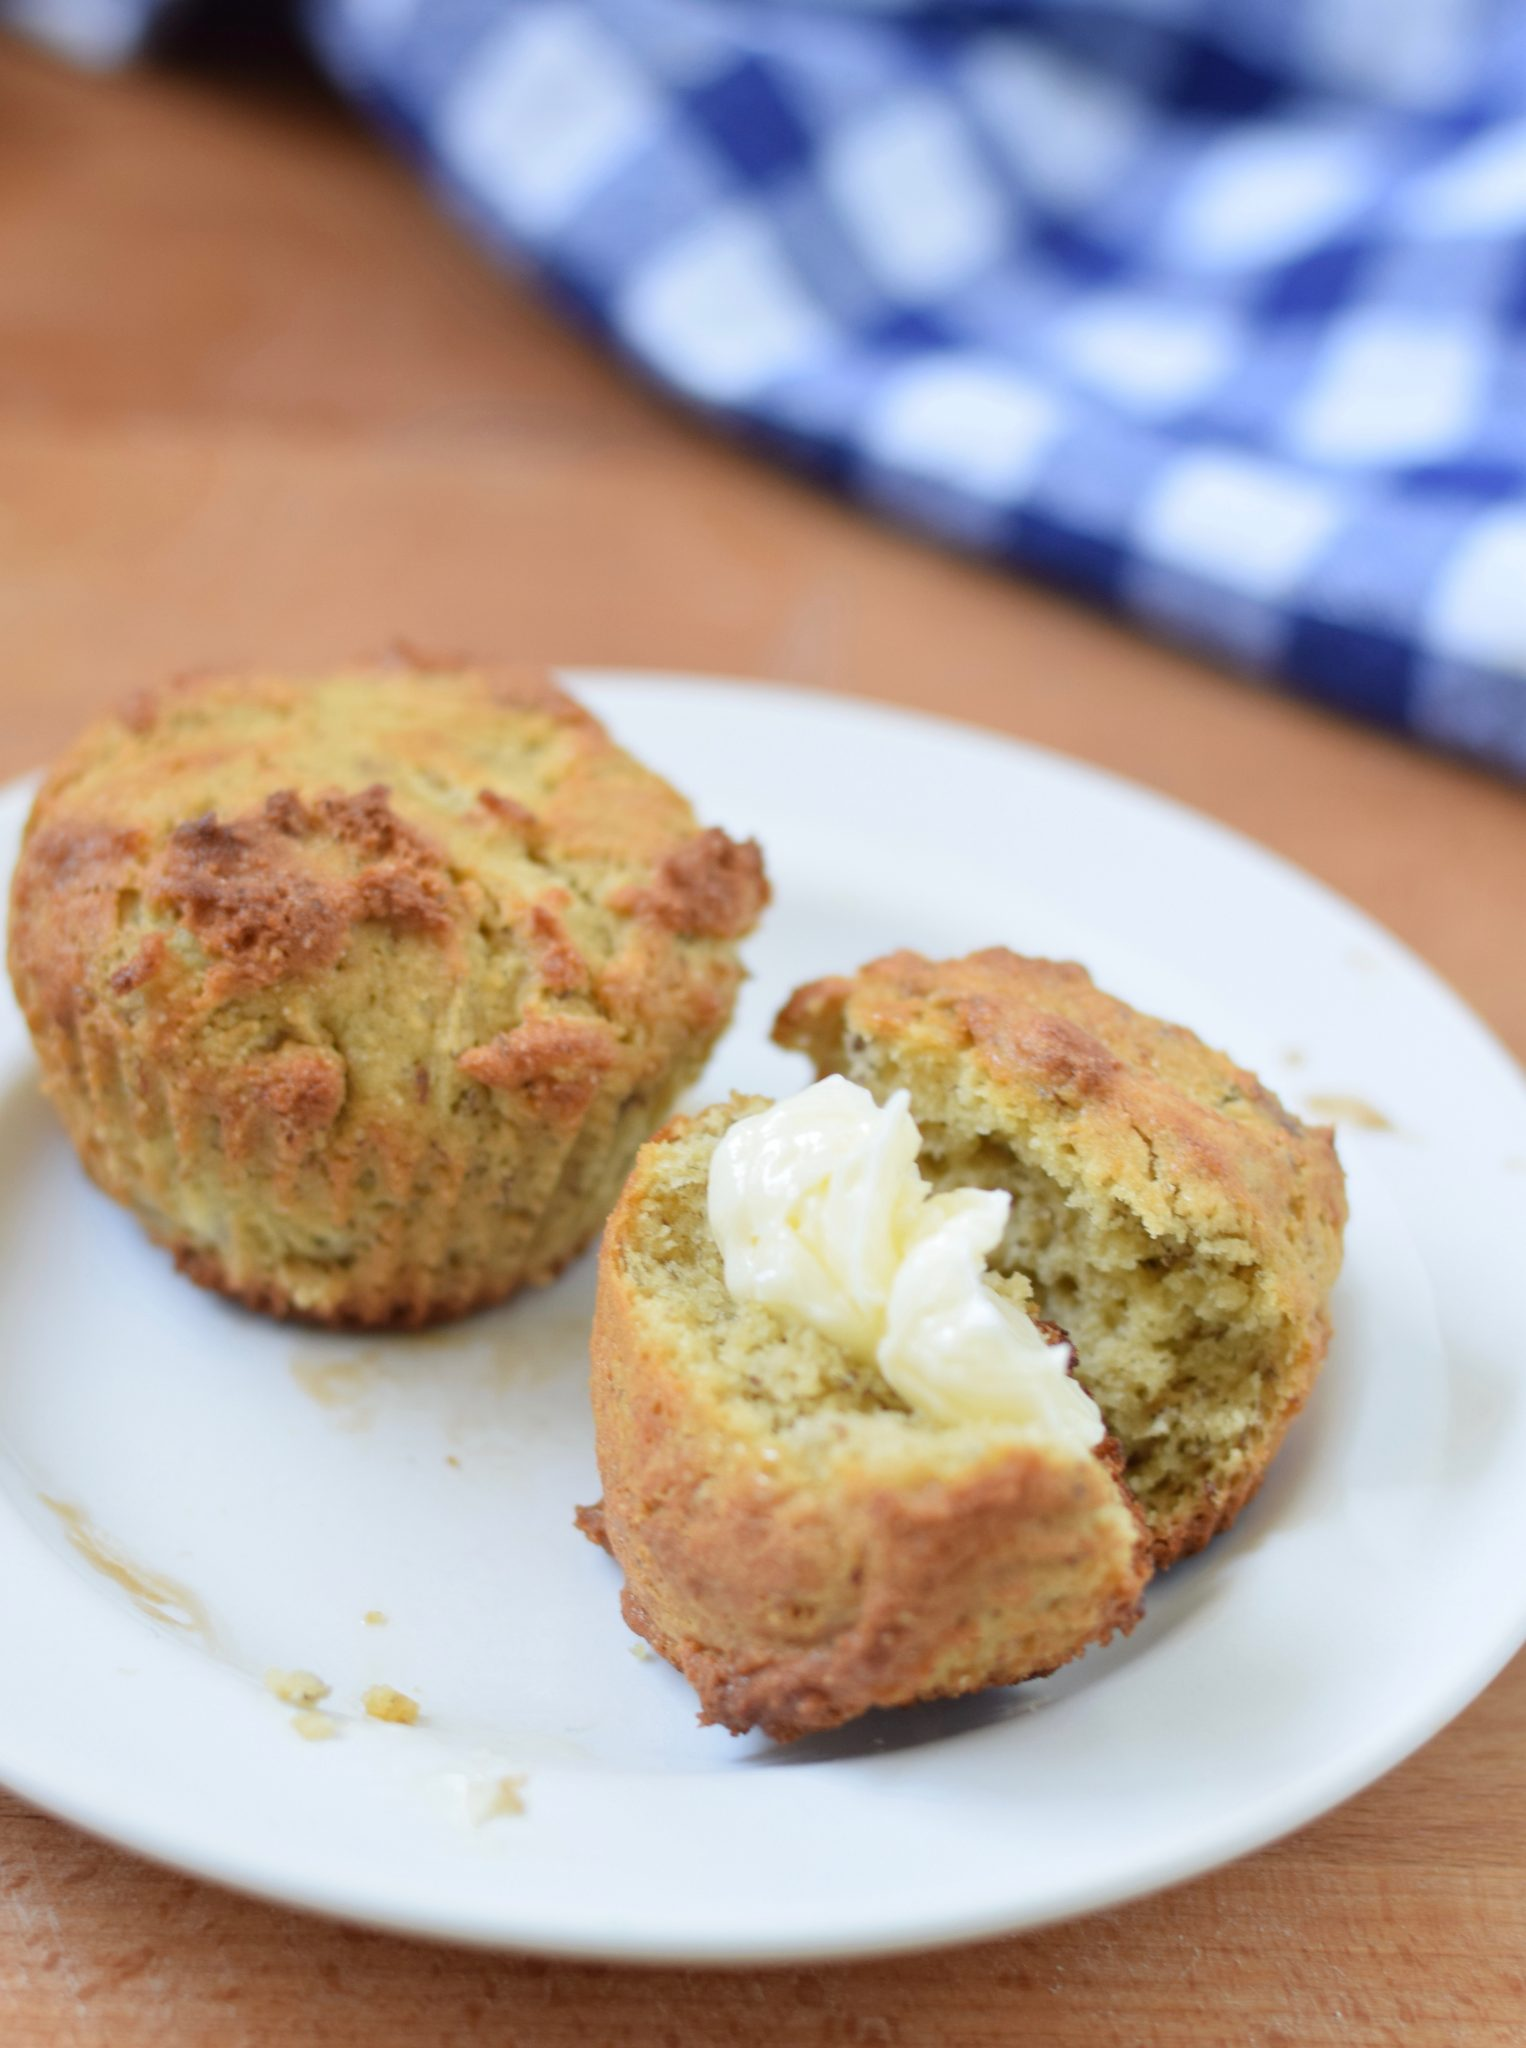 These gluten free banana muffins are easy to bake. Learn how at beneficial-bento.com